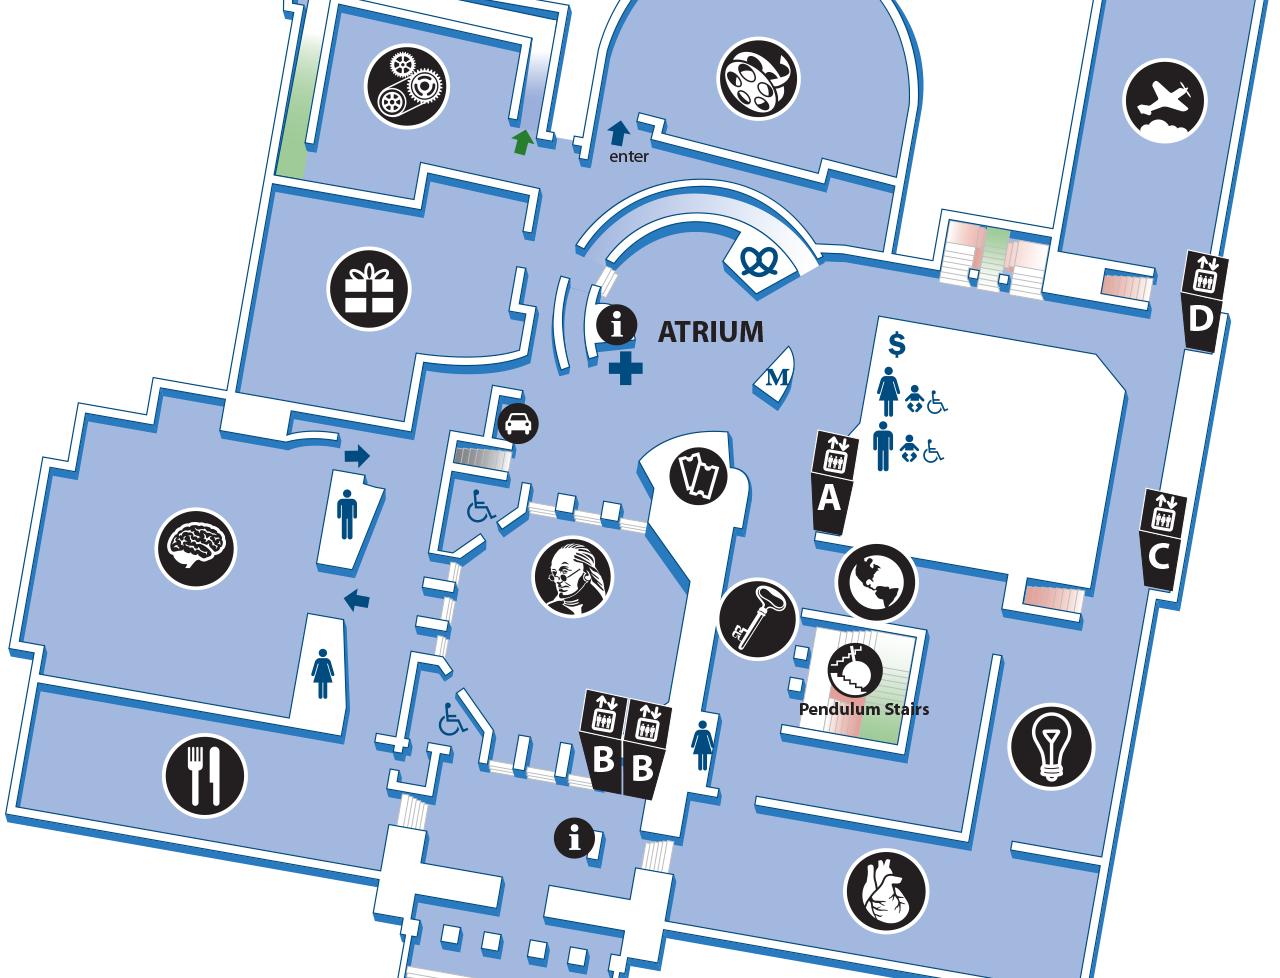 Map of the second floor, showing the locations of major, permanent exhibits, The Giant Heart, and the Benjamin Franklin Memorial..